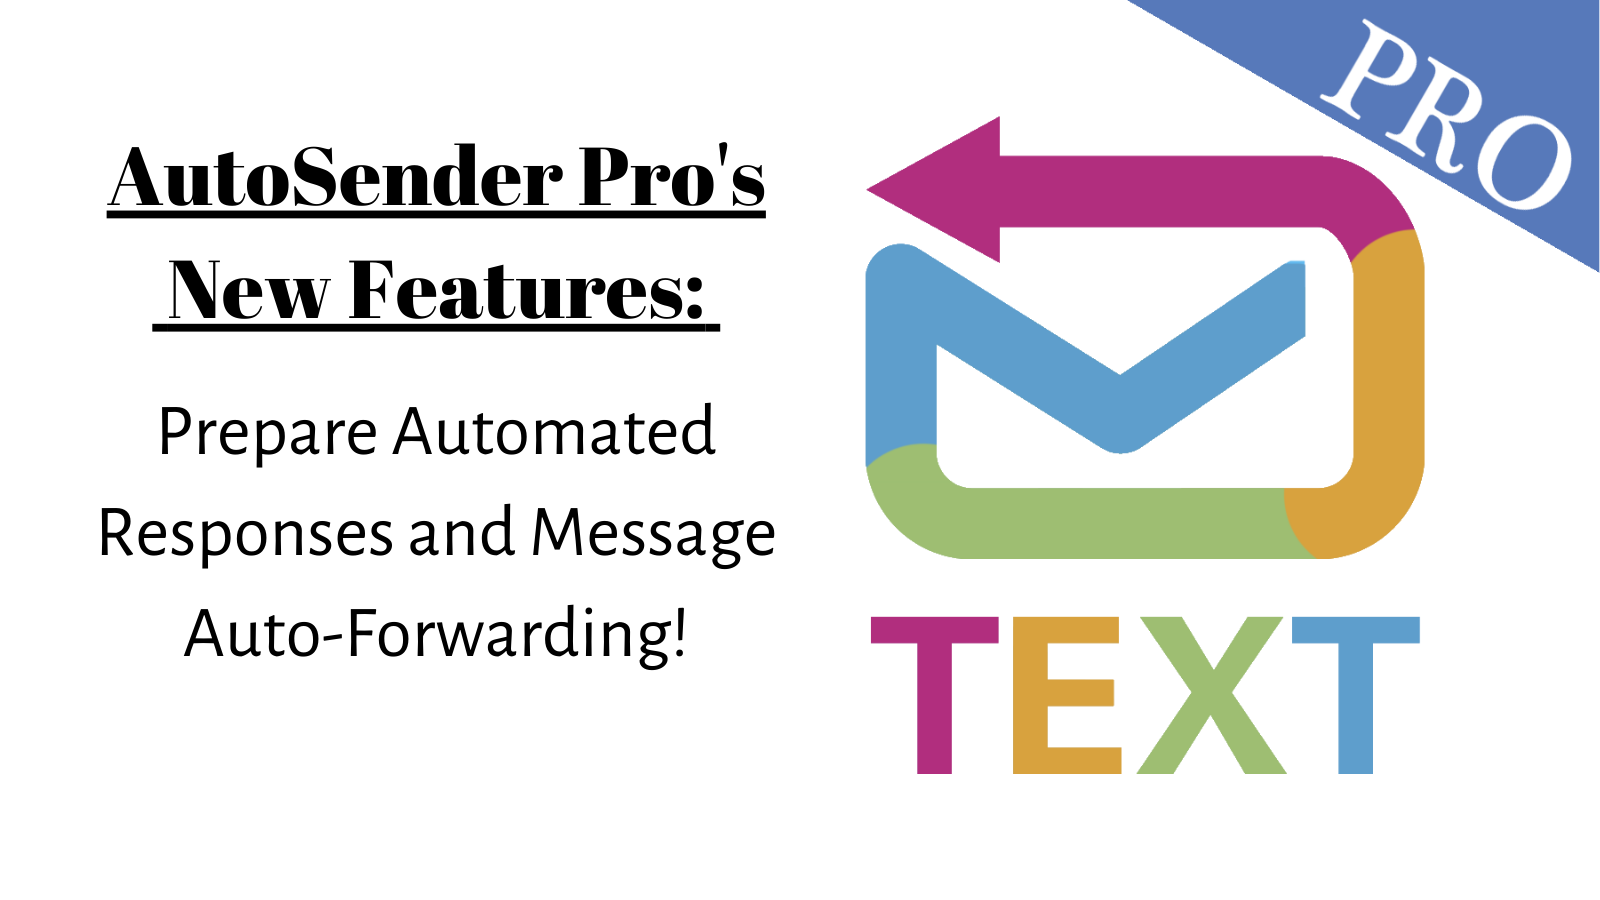 AutoSender Pro New features